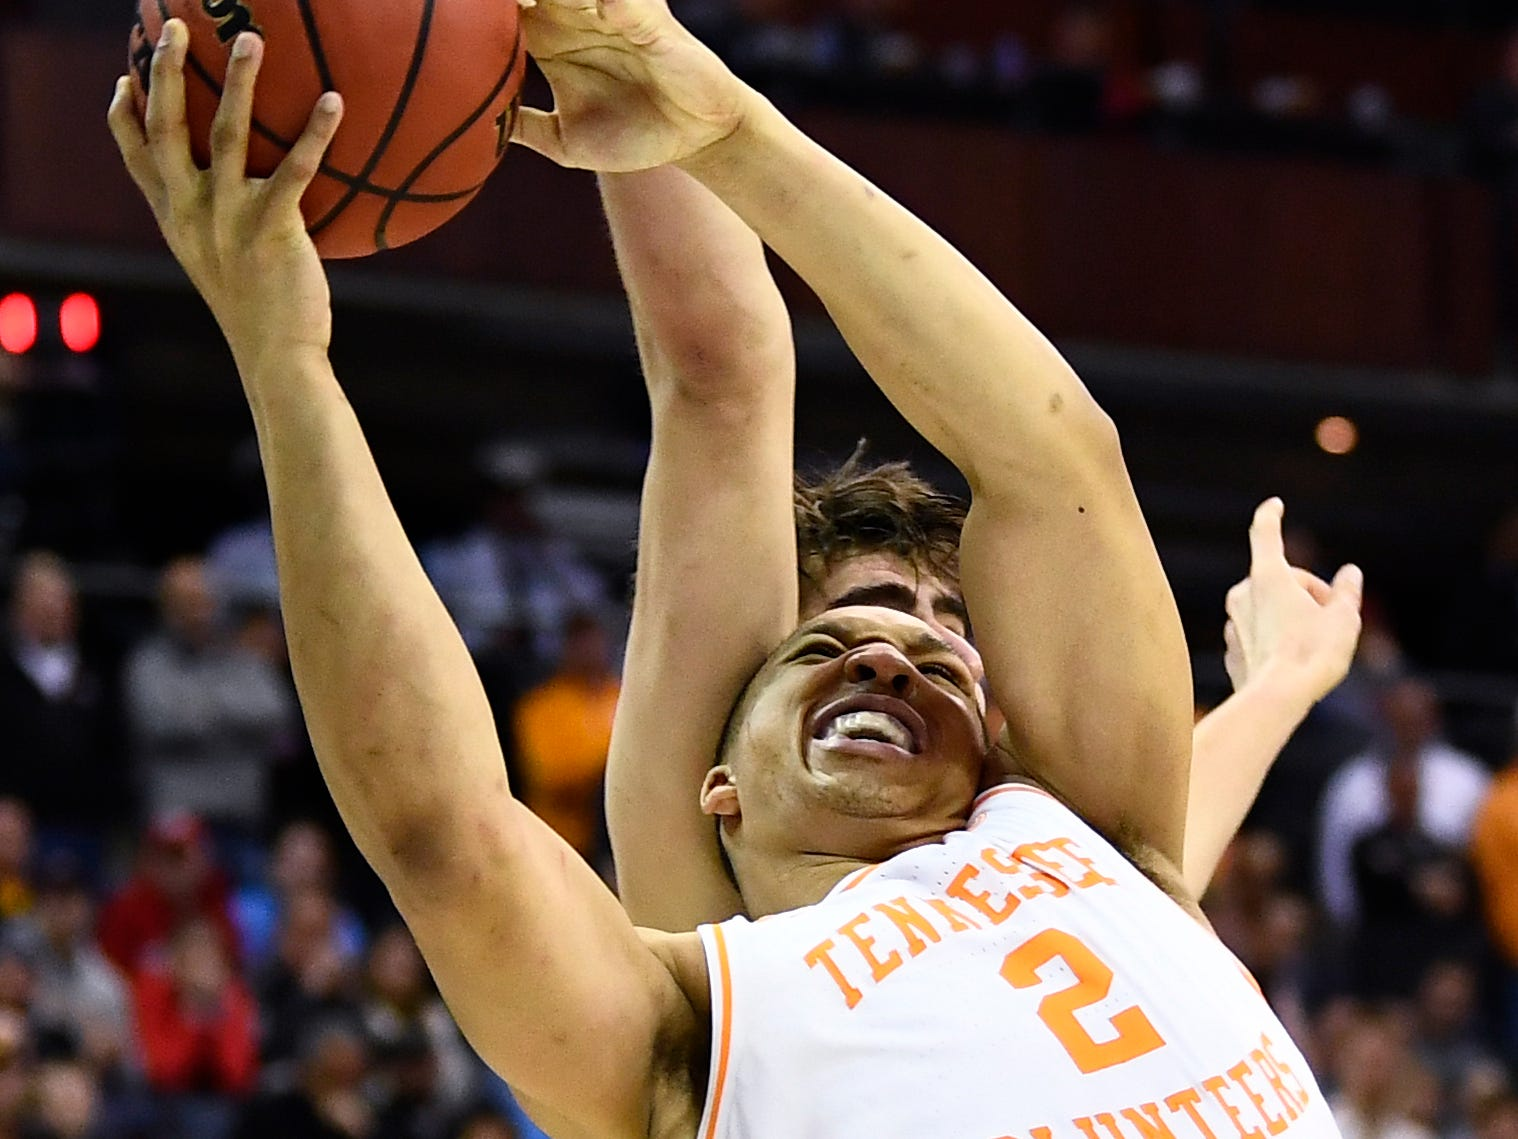 Tennessee forward Grant Williams (2) is fouled by Iowa forward Luka Garza (55) during UT's overtime win in the second round of the NCAA Tournament at Nationwide Arena in Columbus, Ohio, Sunday, March 24, 2019.